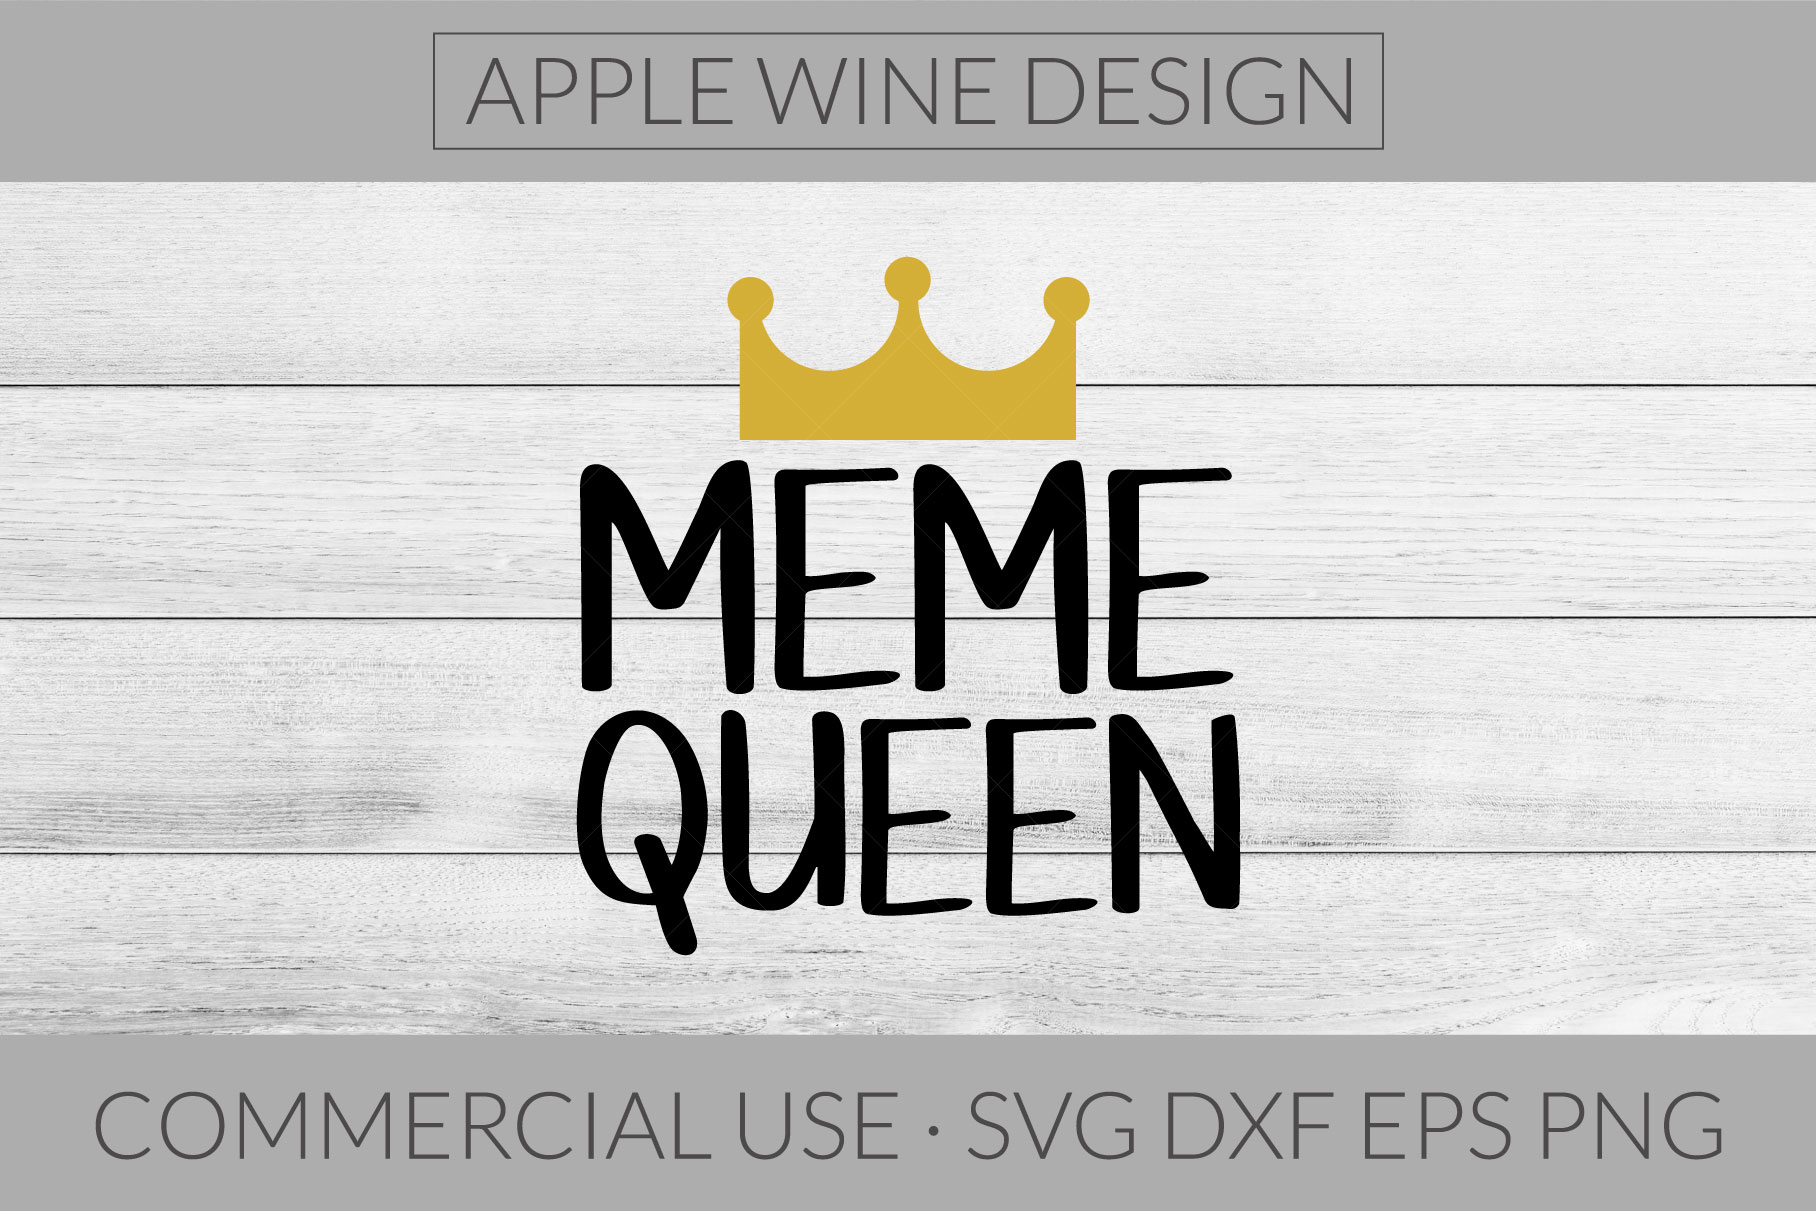 Meme Queen SVG DXF PNG EPS Cutting File example image 1